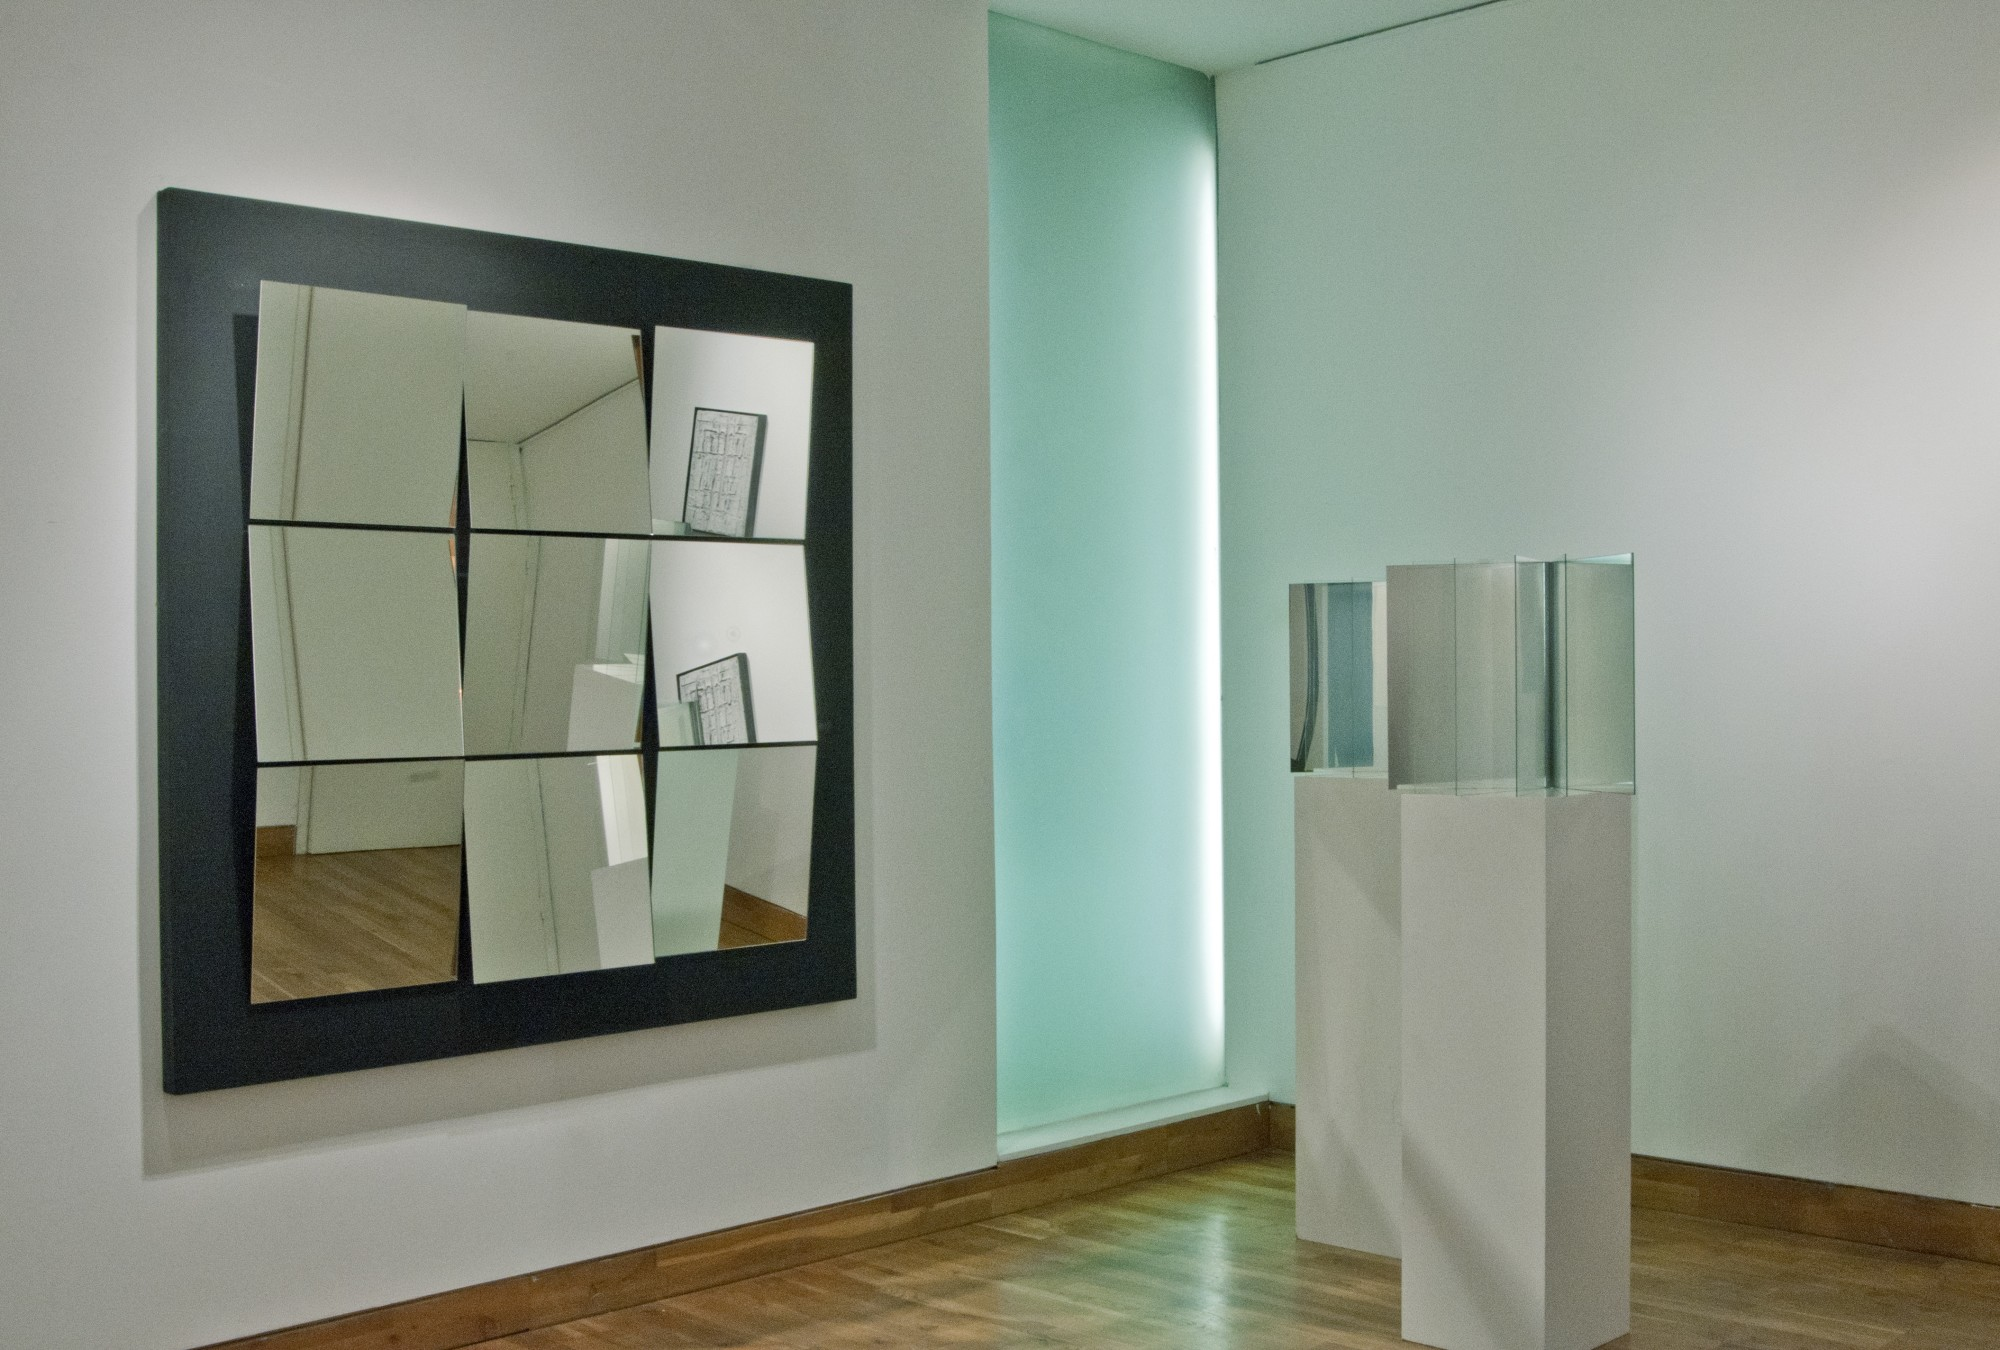 "<span class=""link fancybox-details-link""><a href=""/exhibitions/75/works/image_standalone228/"">View Detail Page</a></span><p>CHRISTIAN MEGERT 